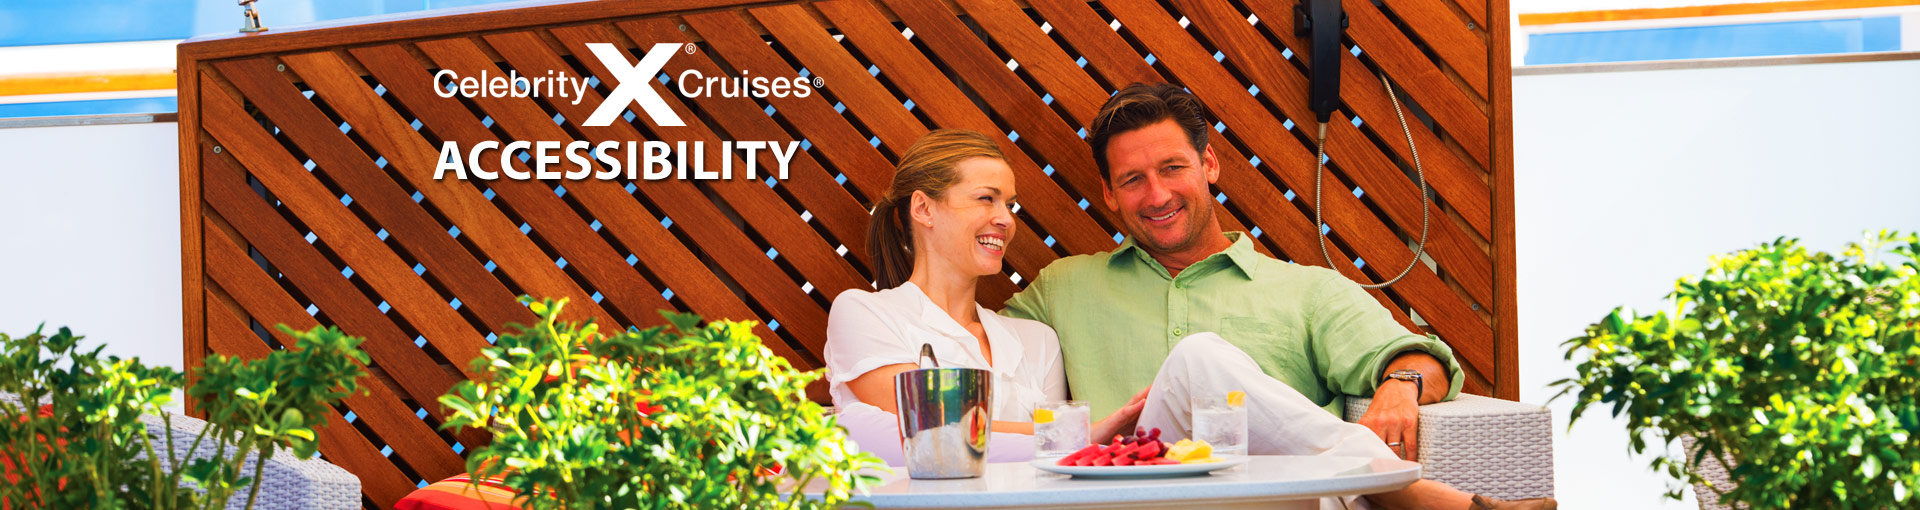 Celebrity Cruises Accessibility